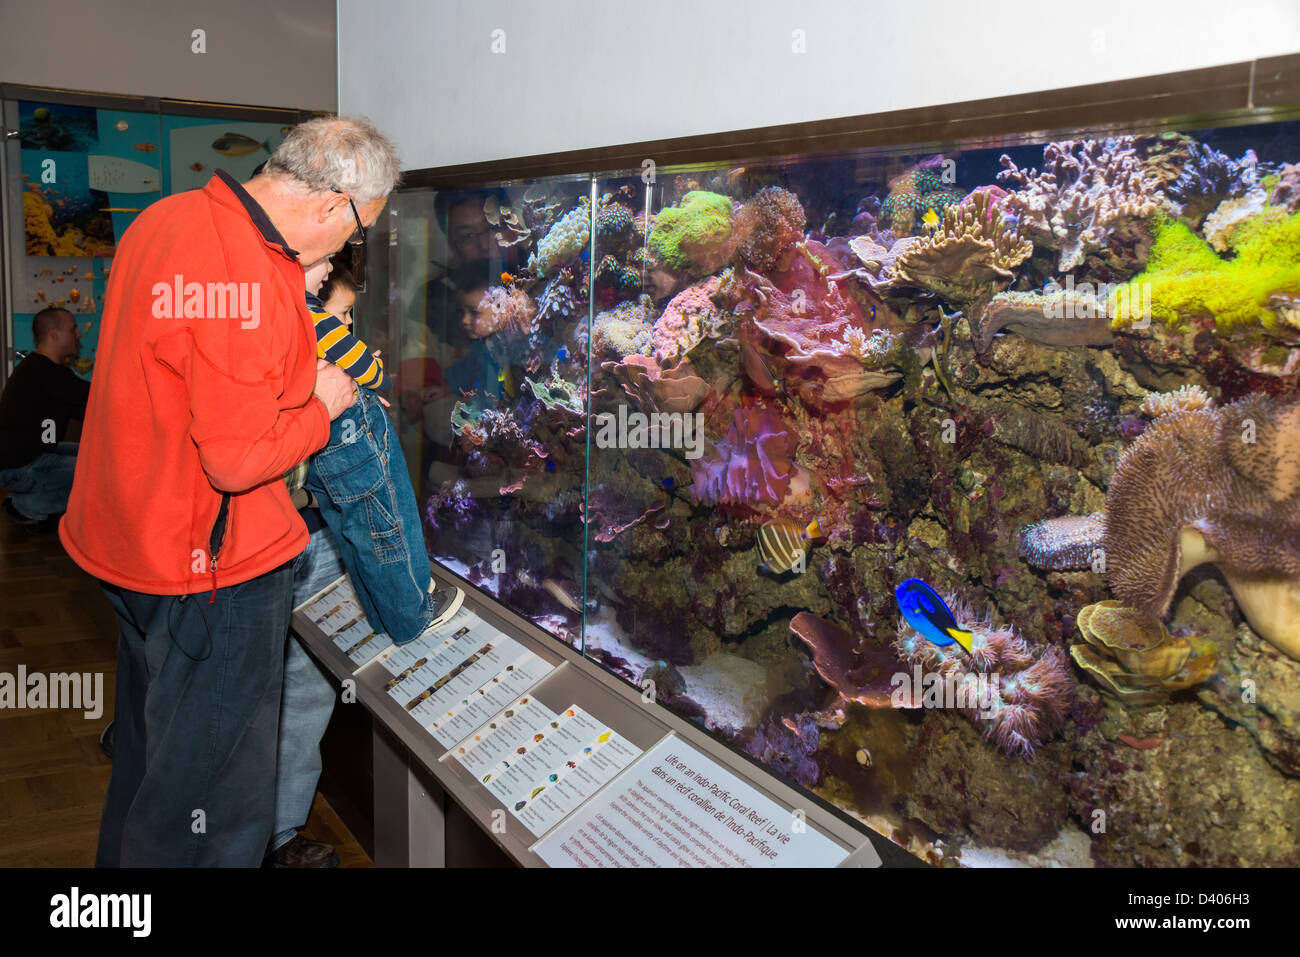 Man and child looking into a large marine aquarium at the Royal Ontario Museum, Toronto, Canada. - Stock Image